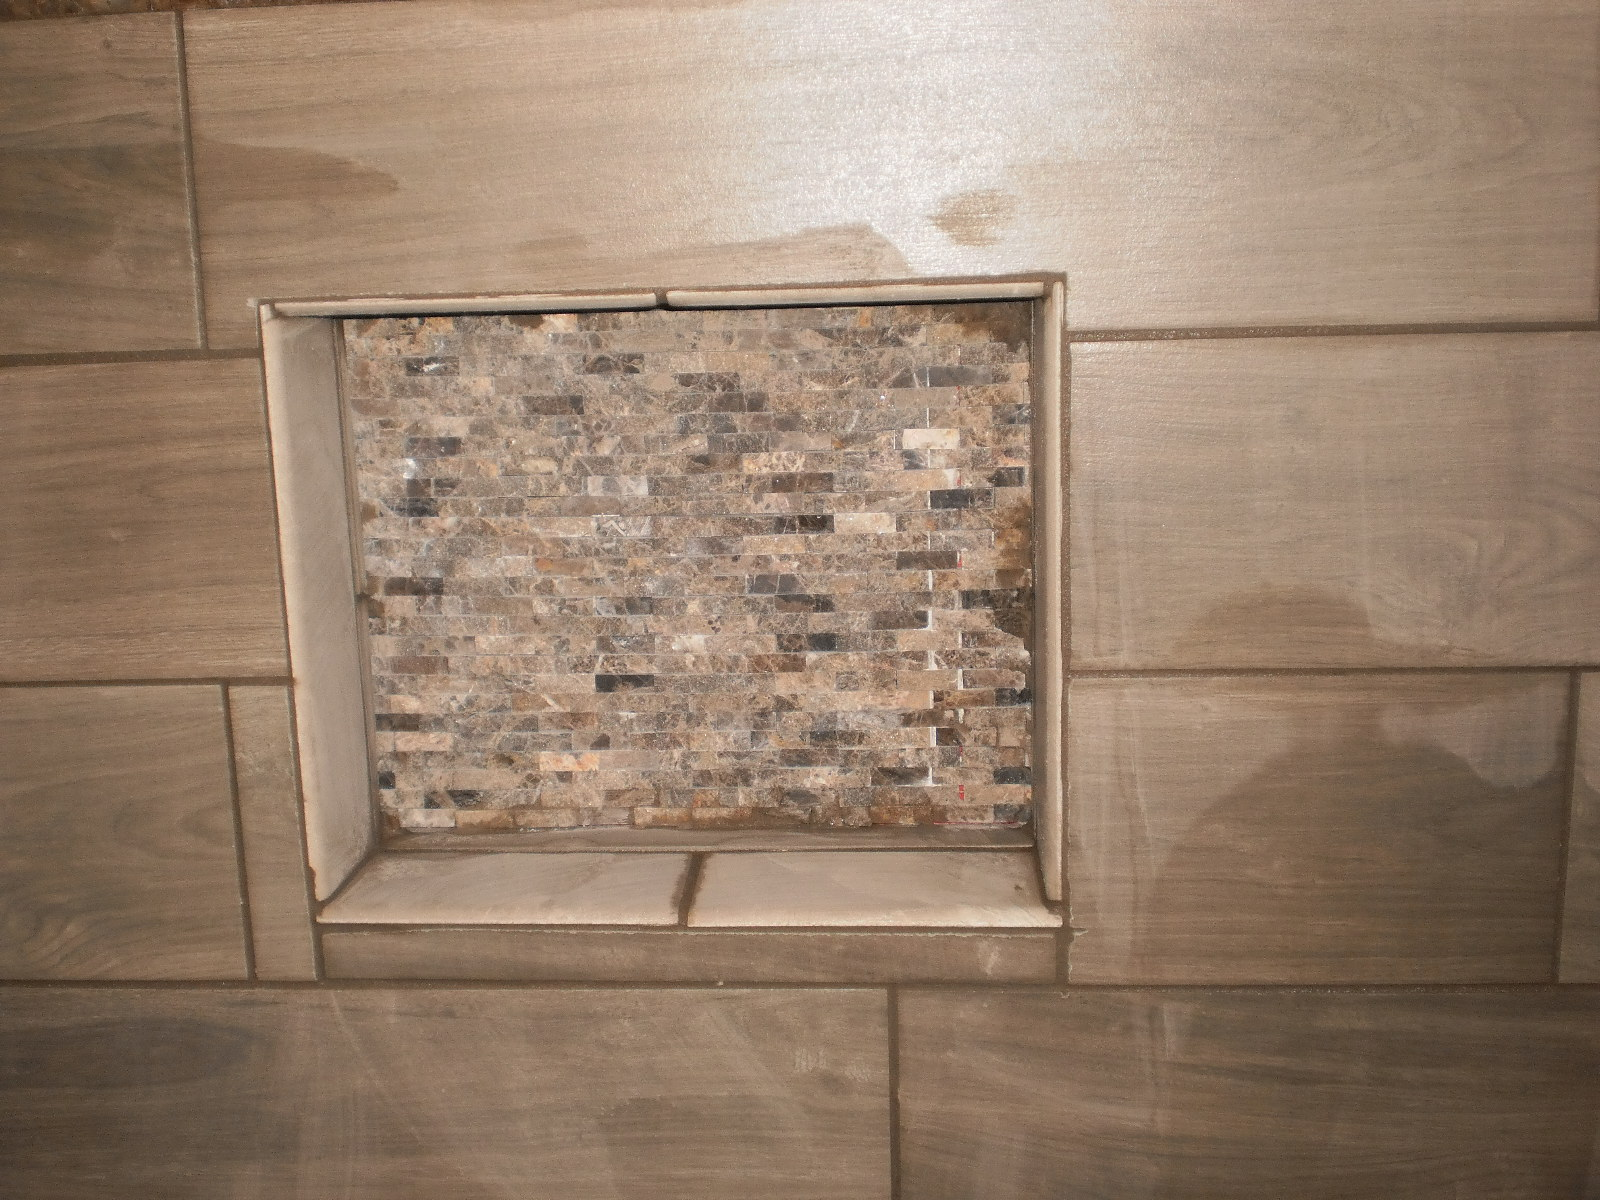 Beau Mosaic Tile Shower Soap Box